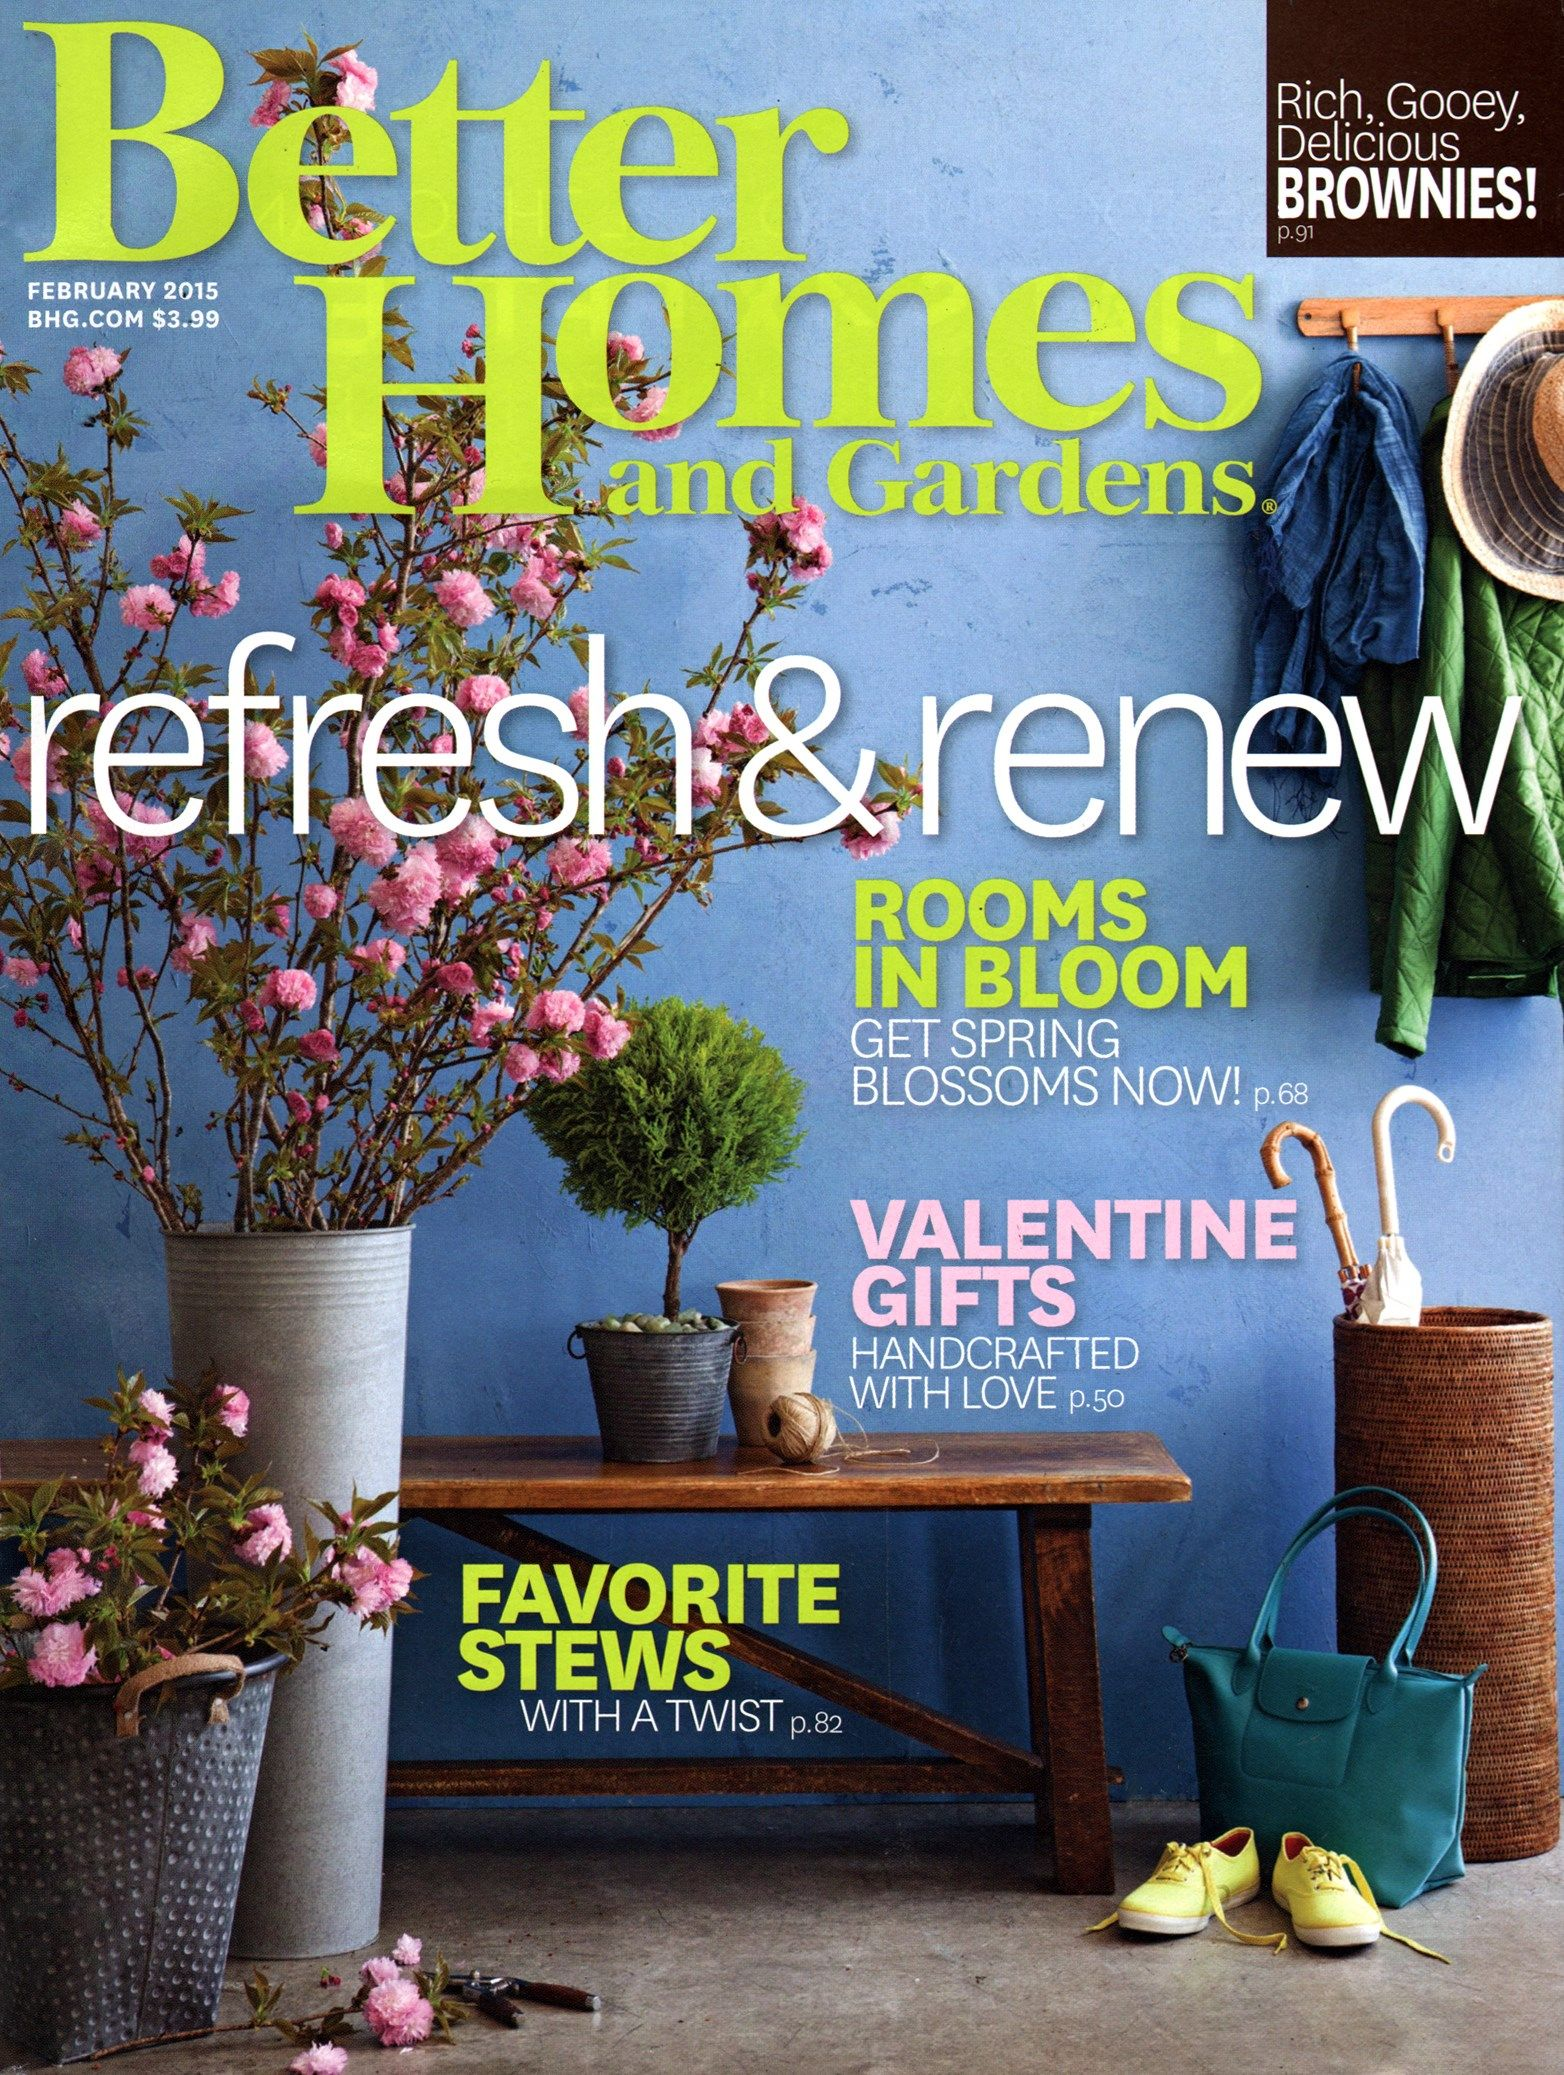 c0fb462b5ddfad1eb82e750be0e9c187 - Better Homes And Gardens Magazine Unsubscribe